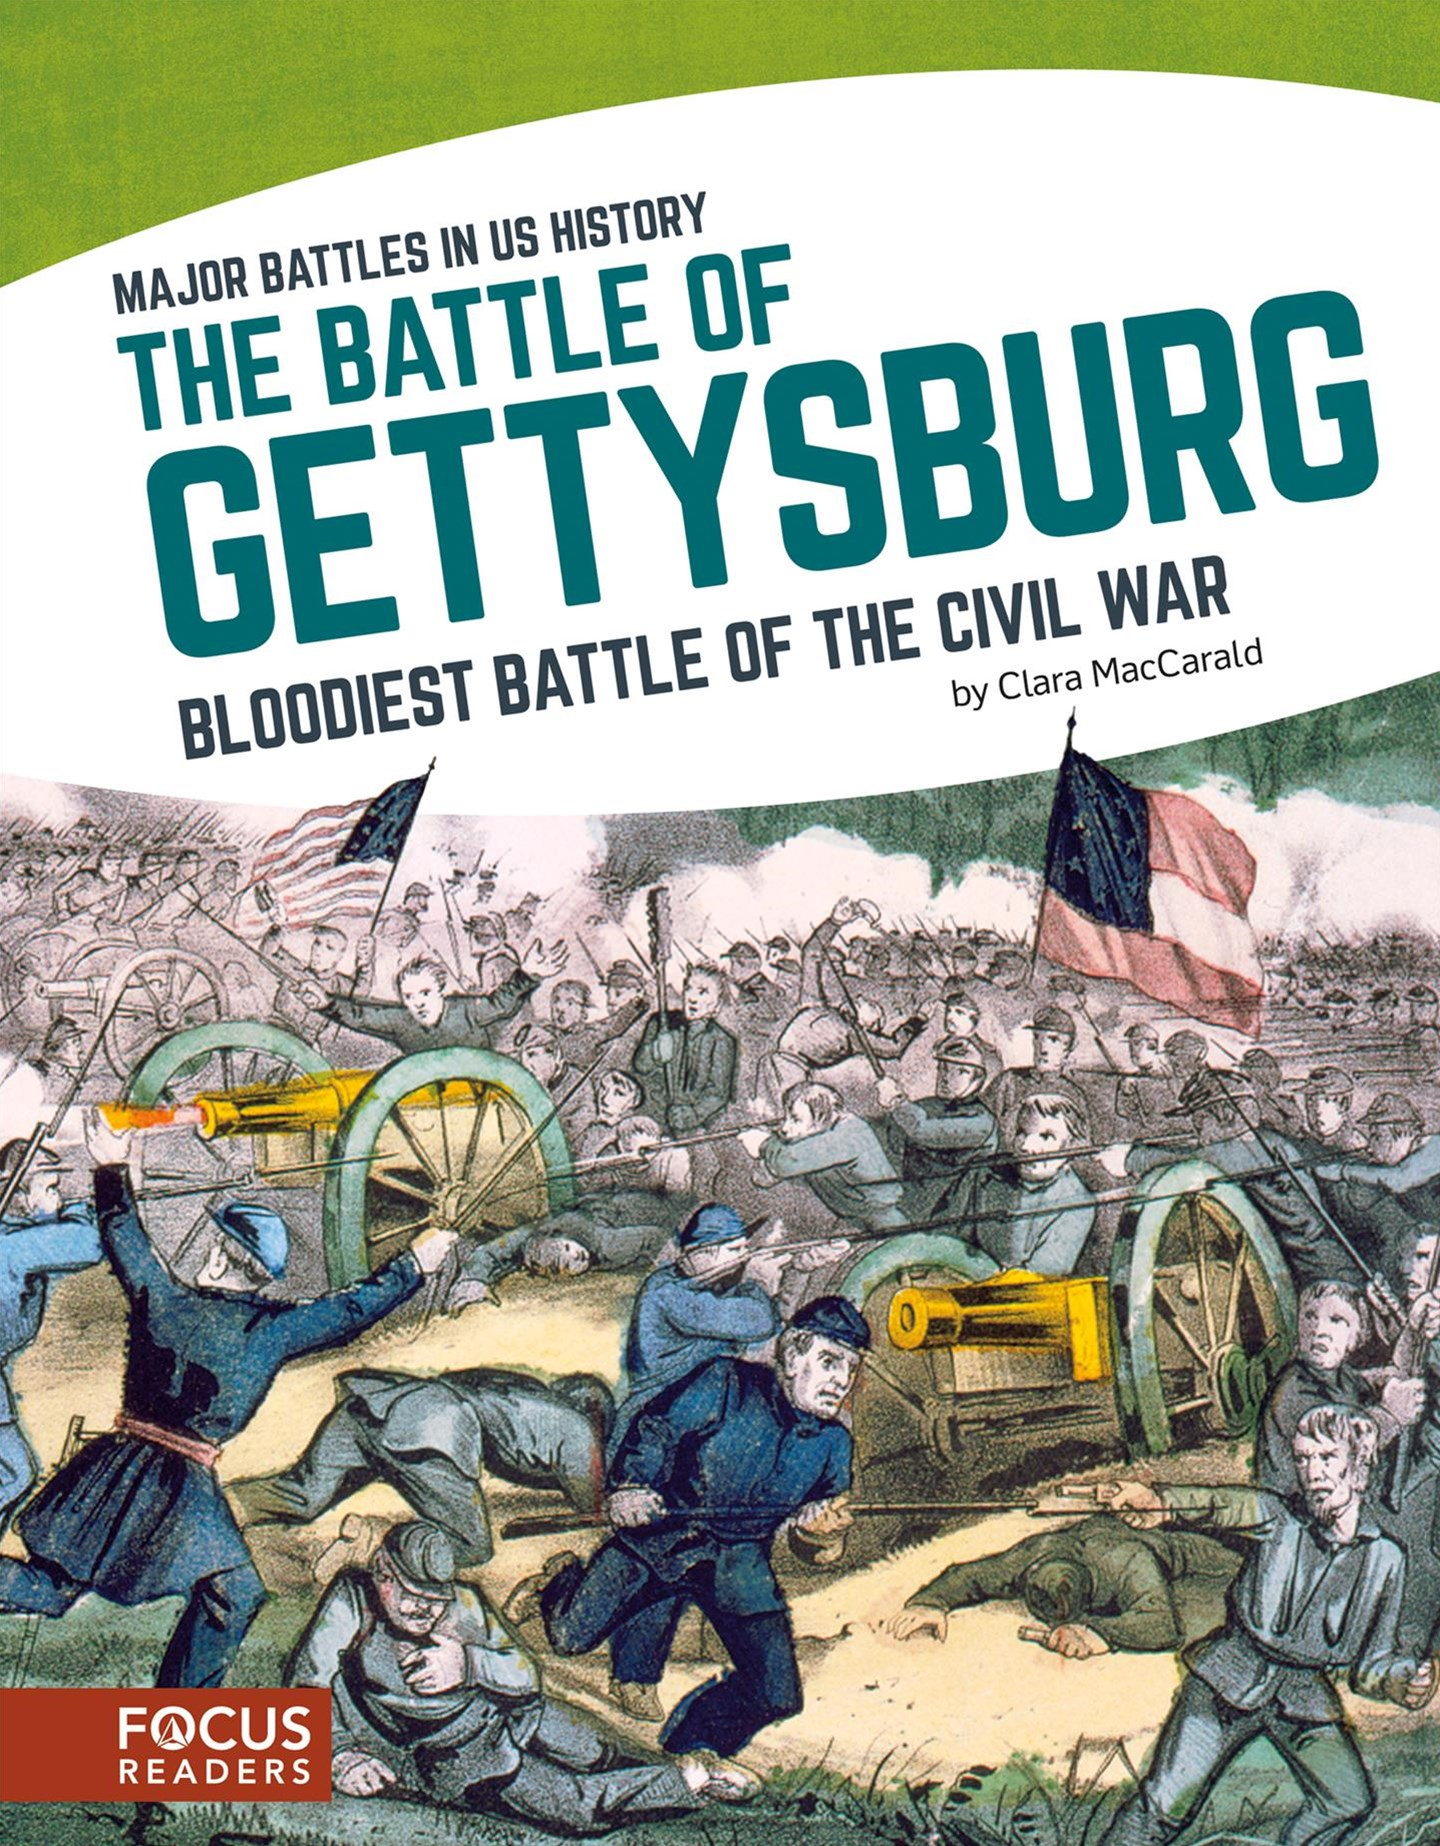 Major Battles in US History: The Battle of Gettysburg